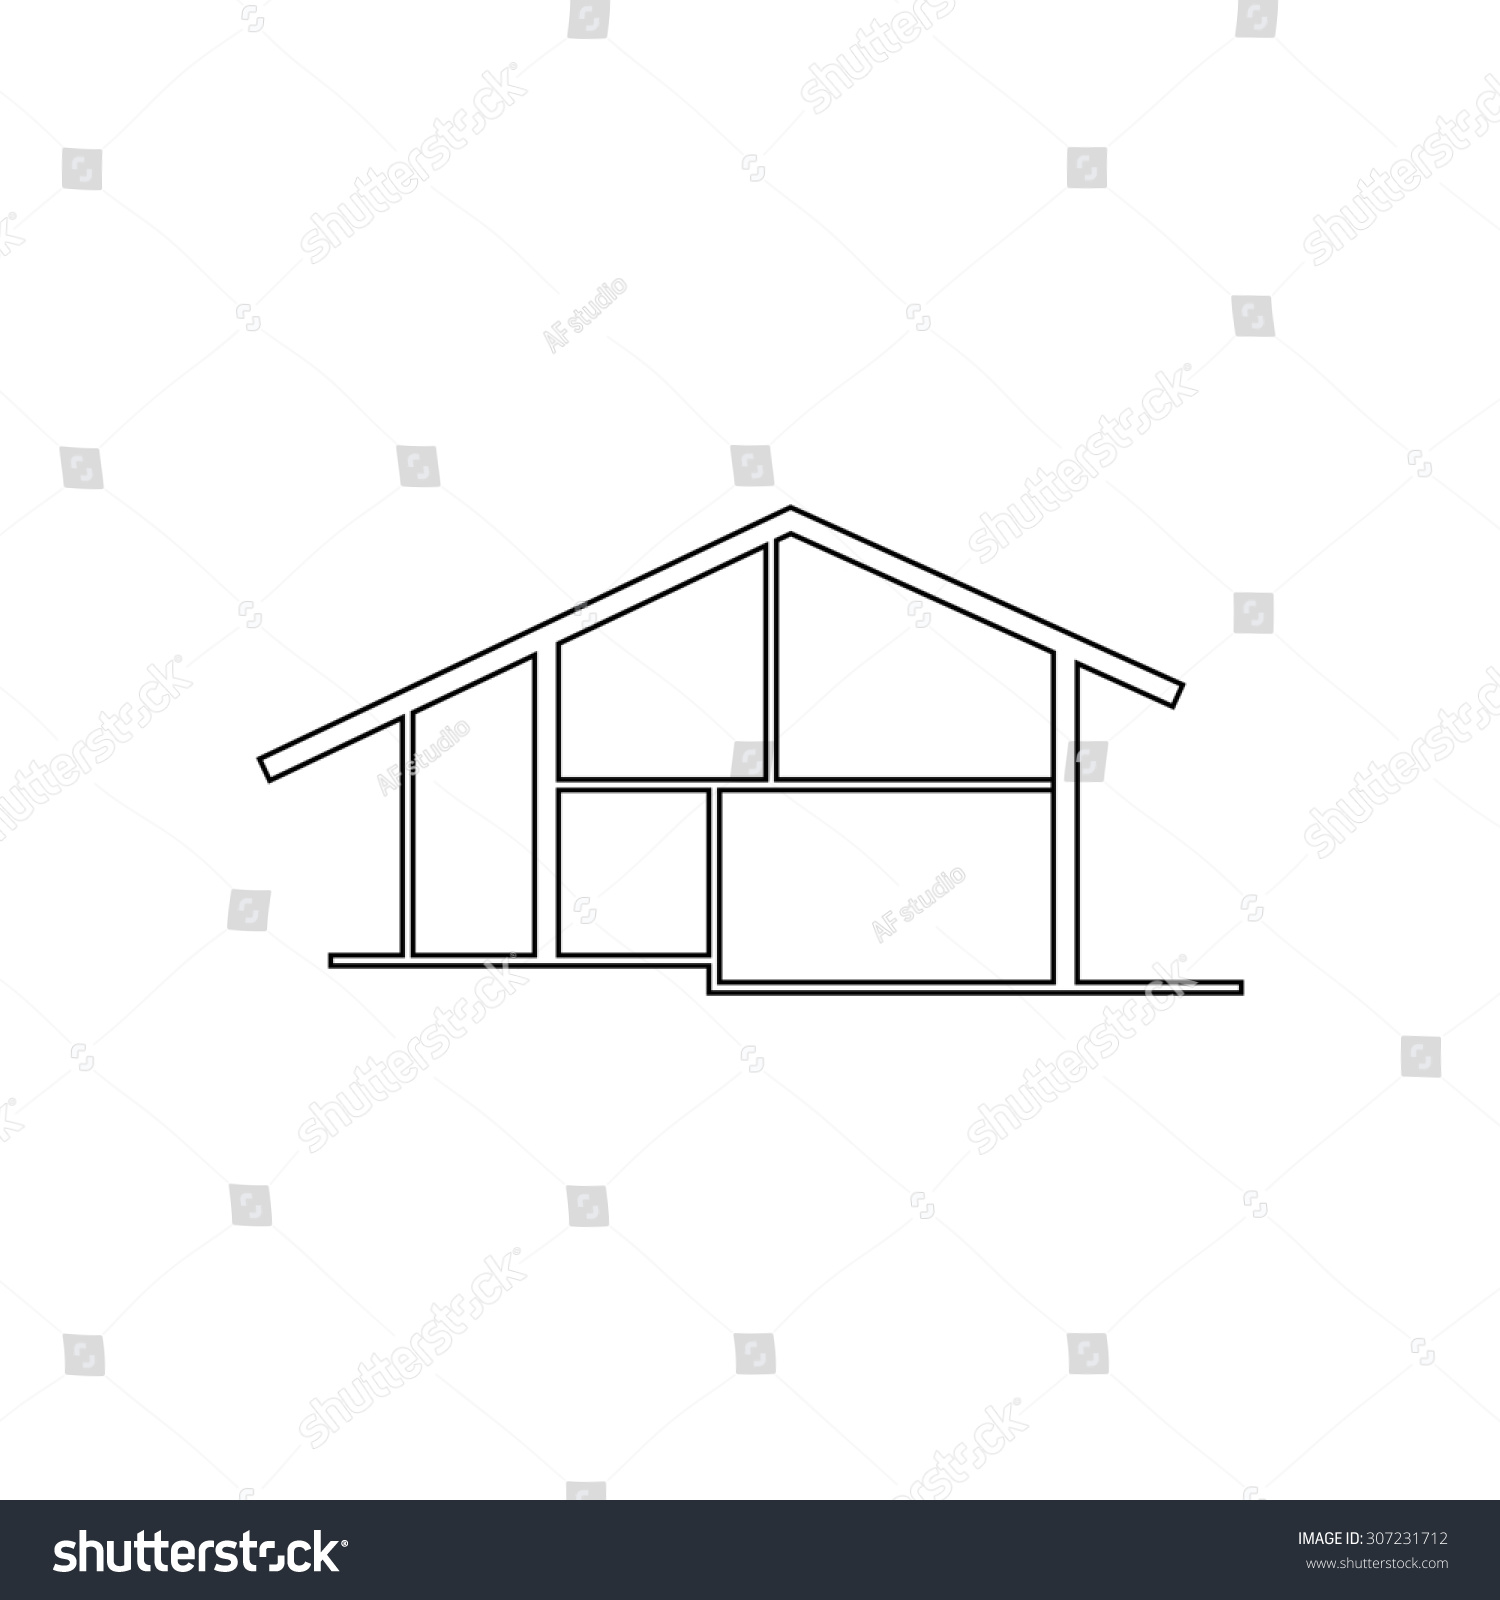 hight resolution of modern house outline black simple symbol